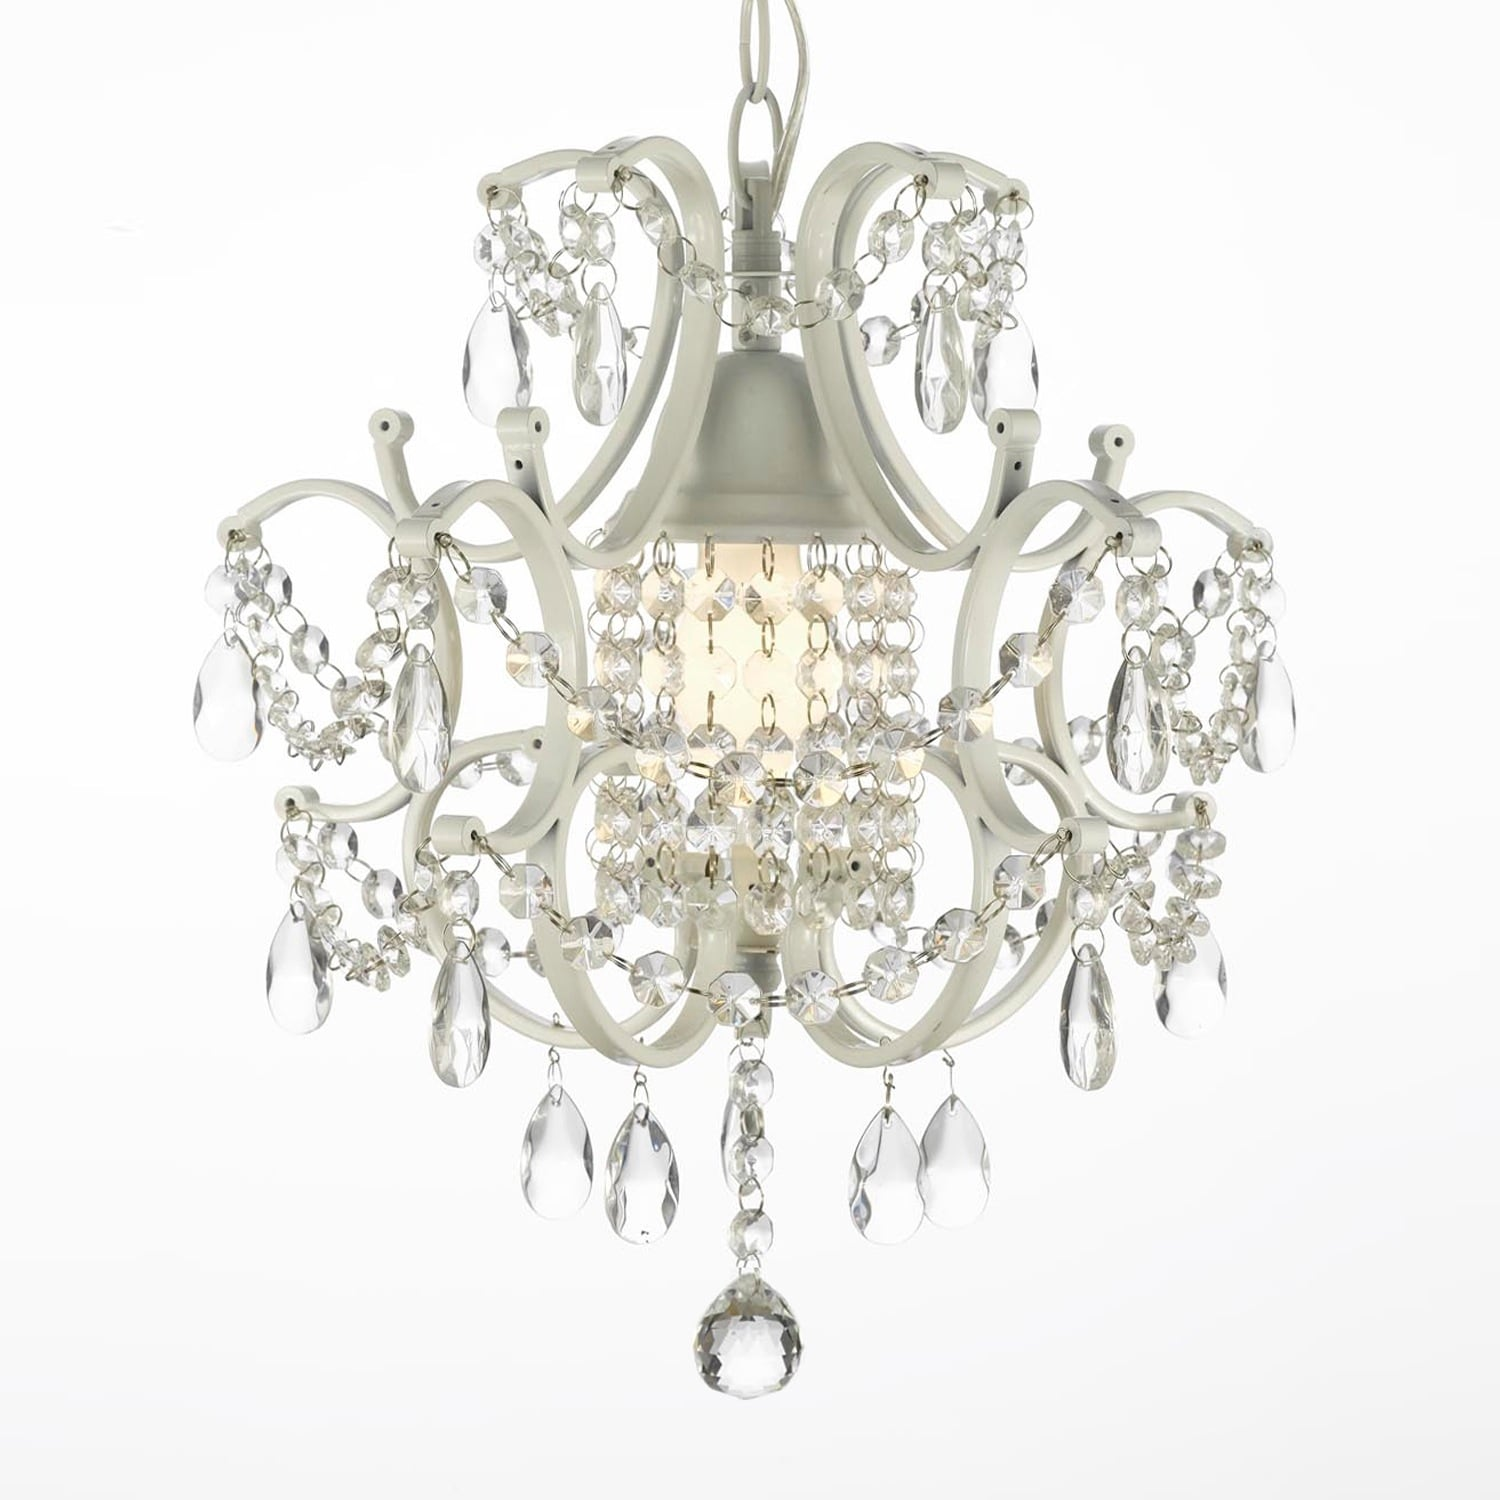 Wrought iron and crystal white chandelier pendant free shipping wrought iron and crystal white chandelier pendant free shipping today overstock 18891015 arubaitofo Gallery